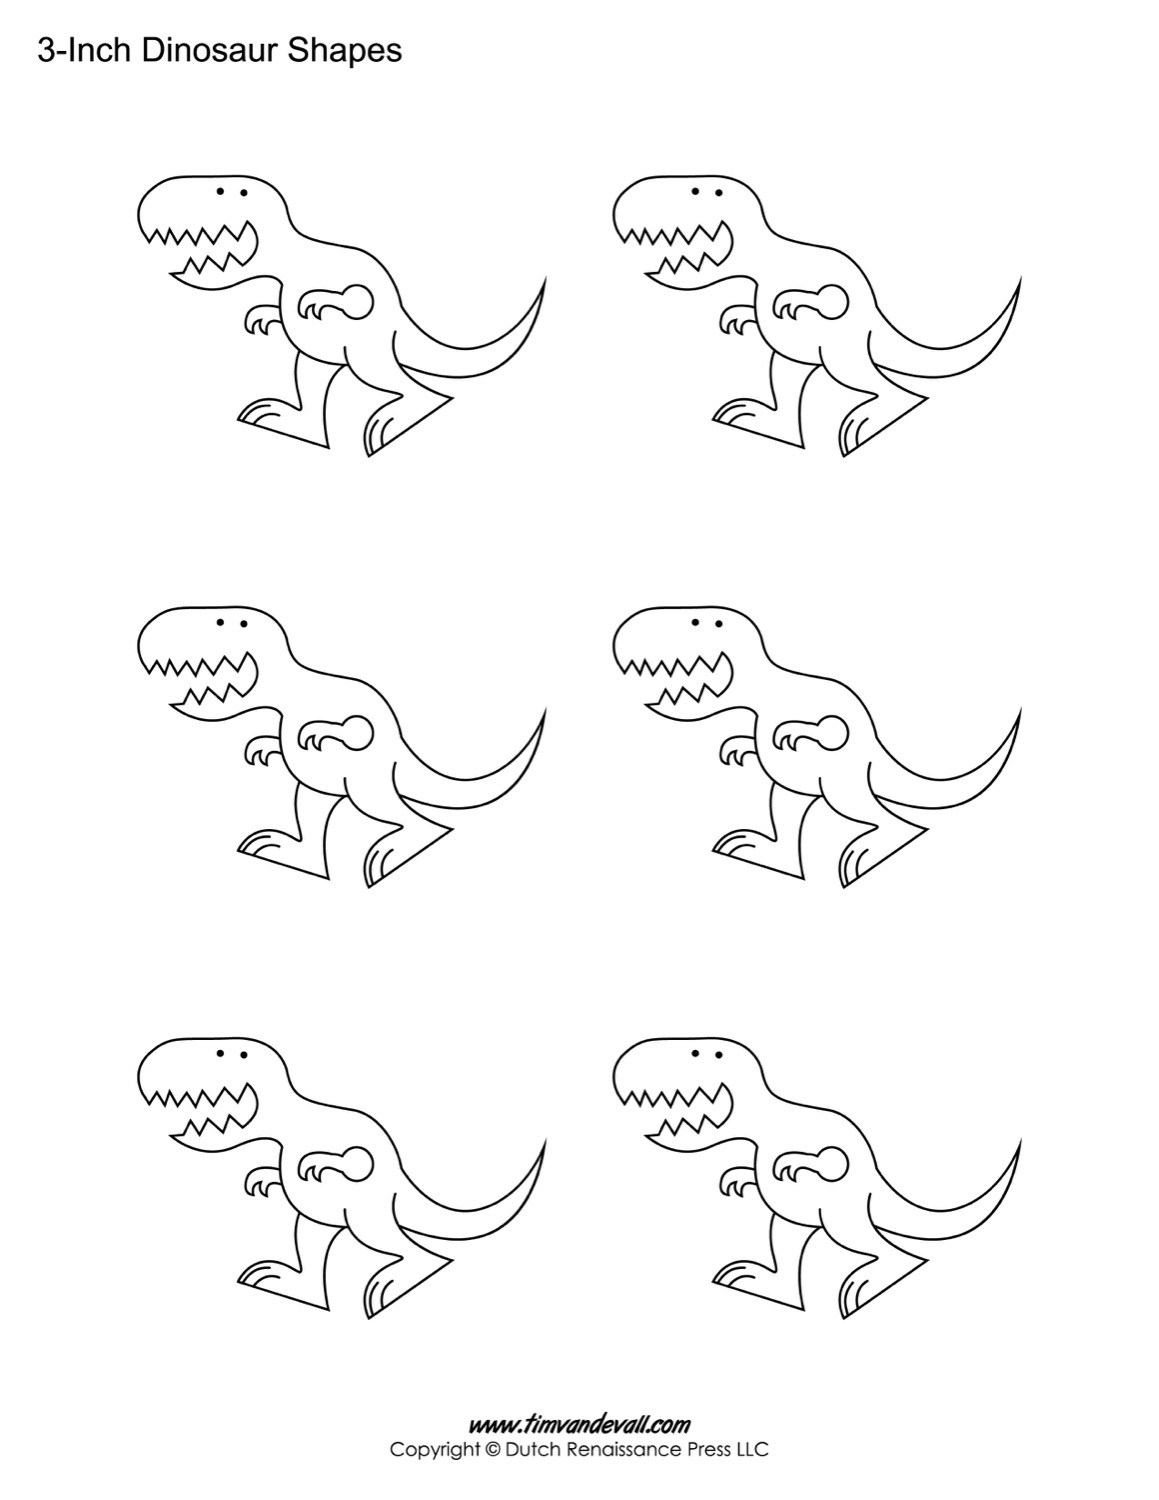 image relating to Dinosaur Template Printable called Dinosaur Templates Absolutely free Printable Dinosaur Condition PDFs